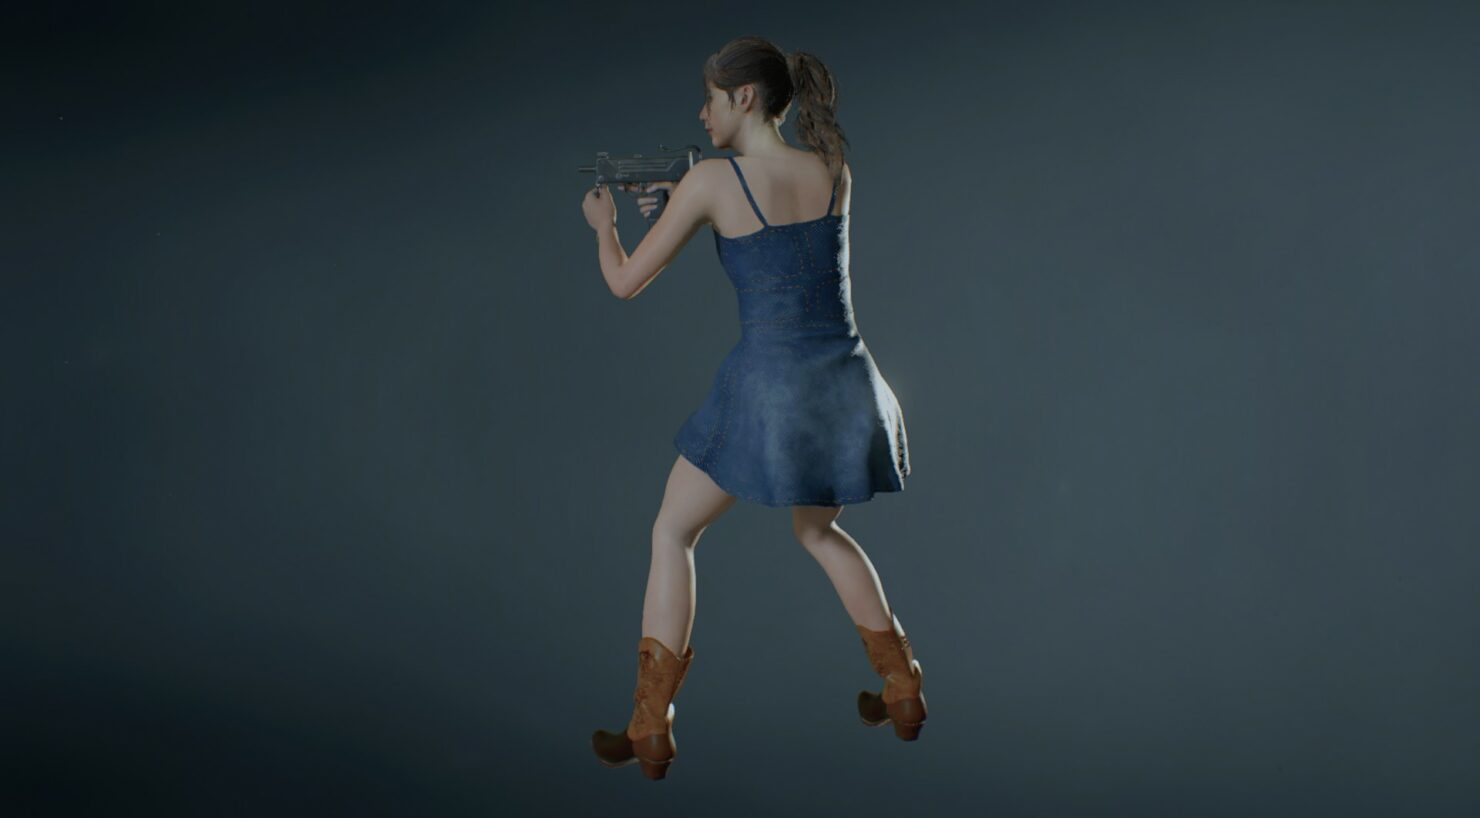 resident-evil-2-remake-mod-real-dress-claire-6